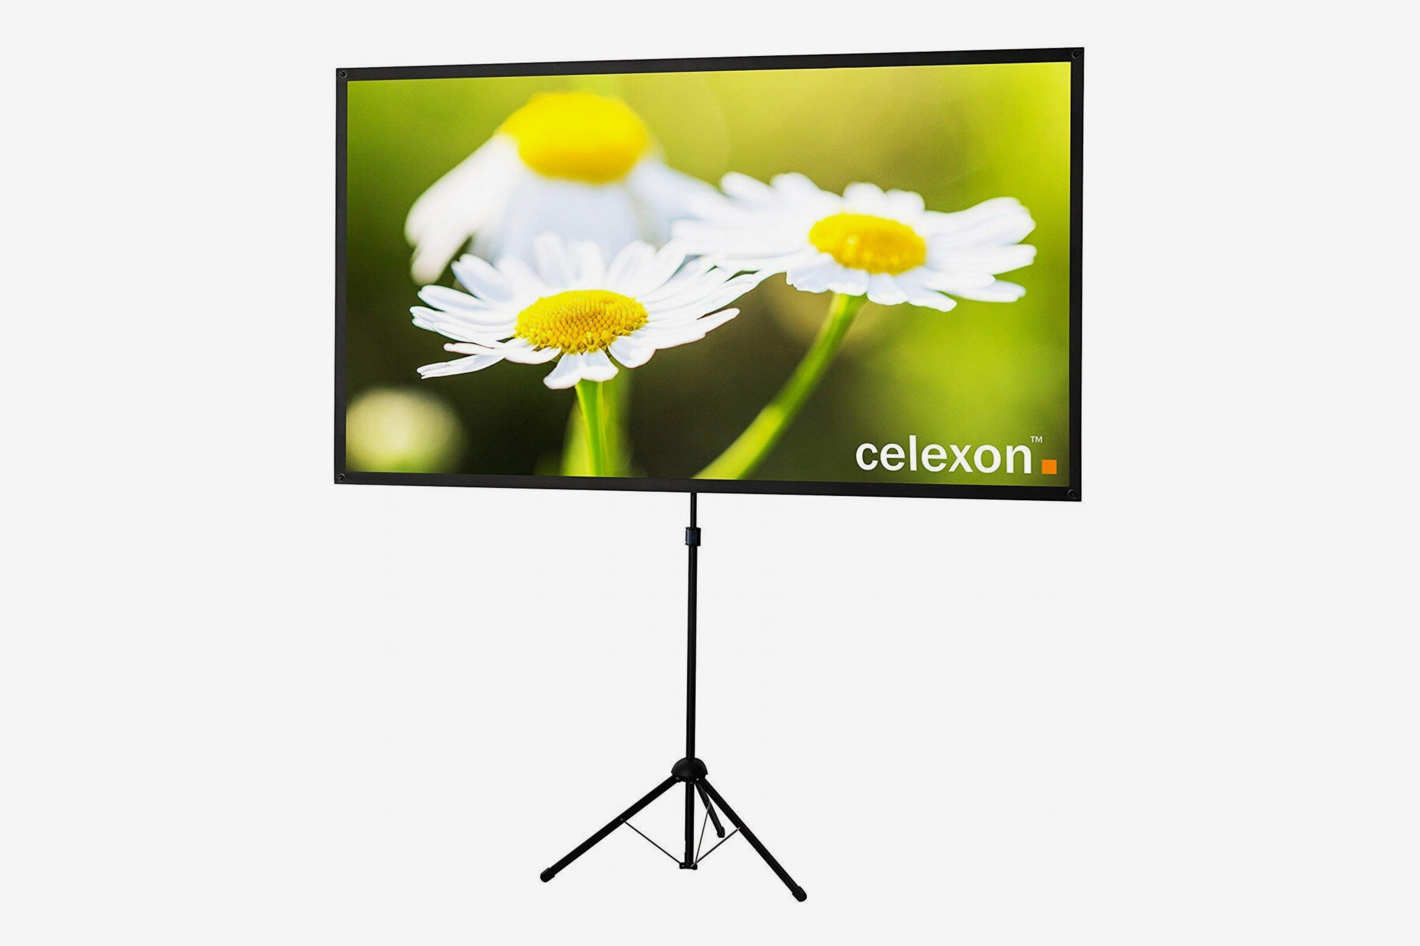 "celexon 80"" Tripod Projector Screen Ultra Lightweight, 16:9 Format"